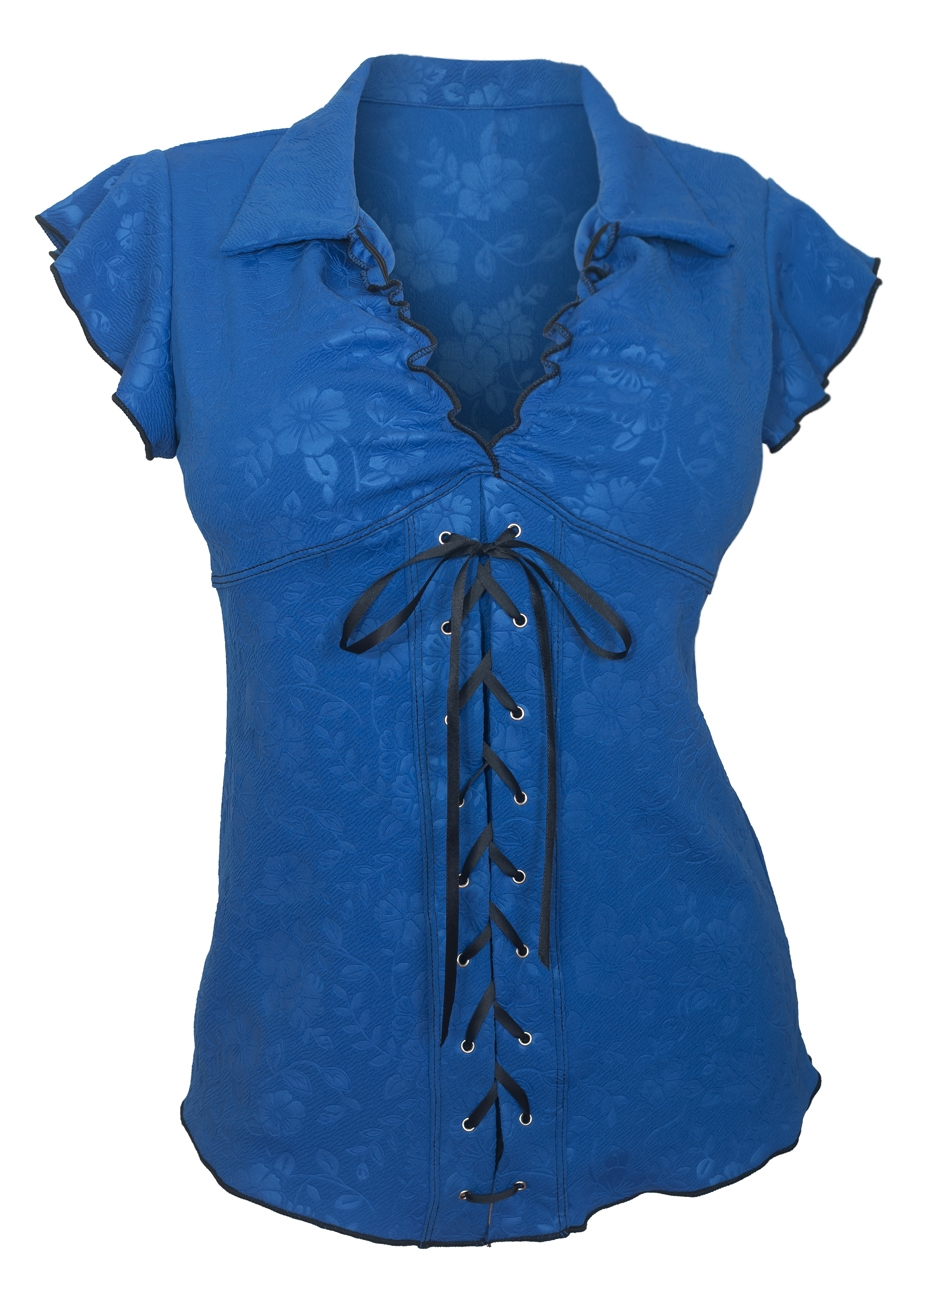 Plus Size Sexy Lace Corset Top Floral Embossed Blue